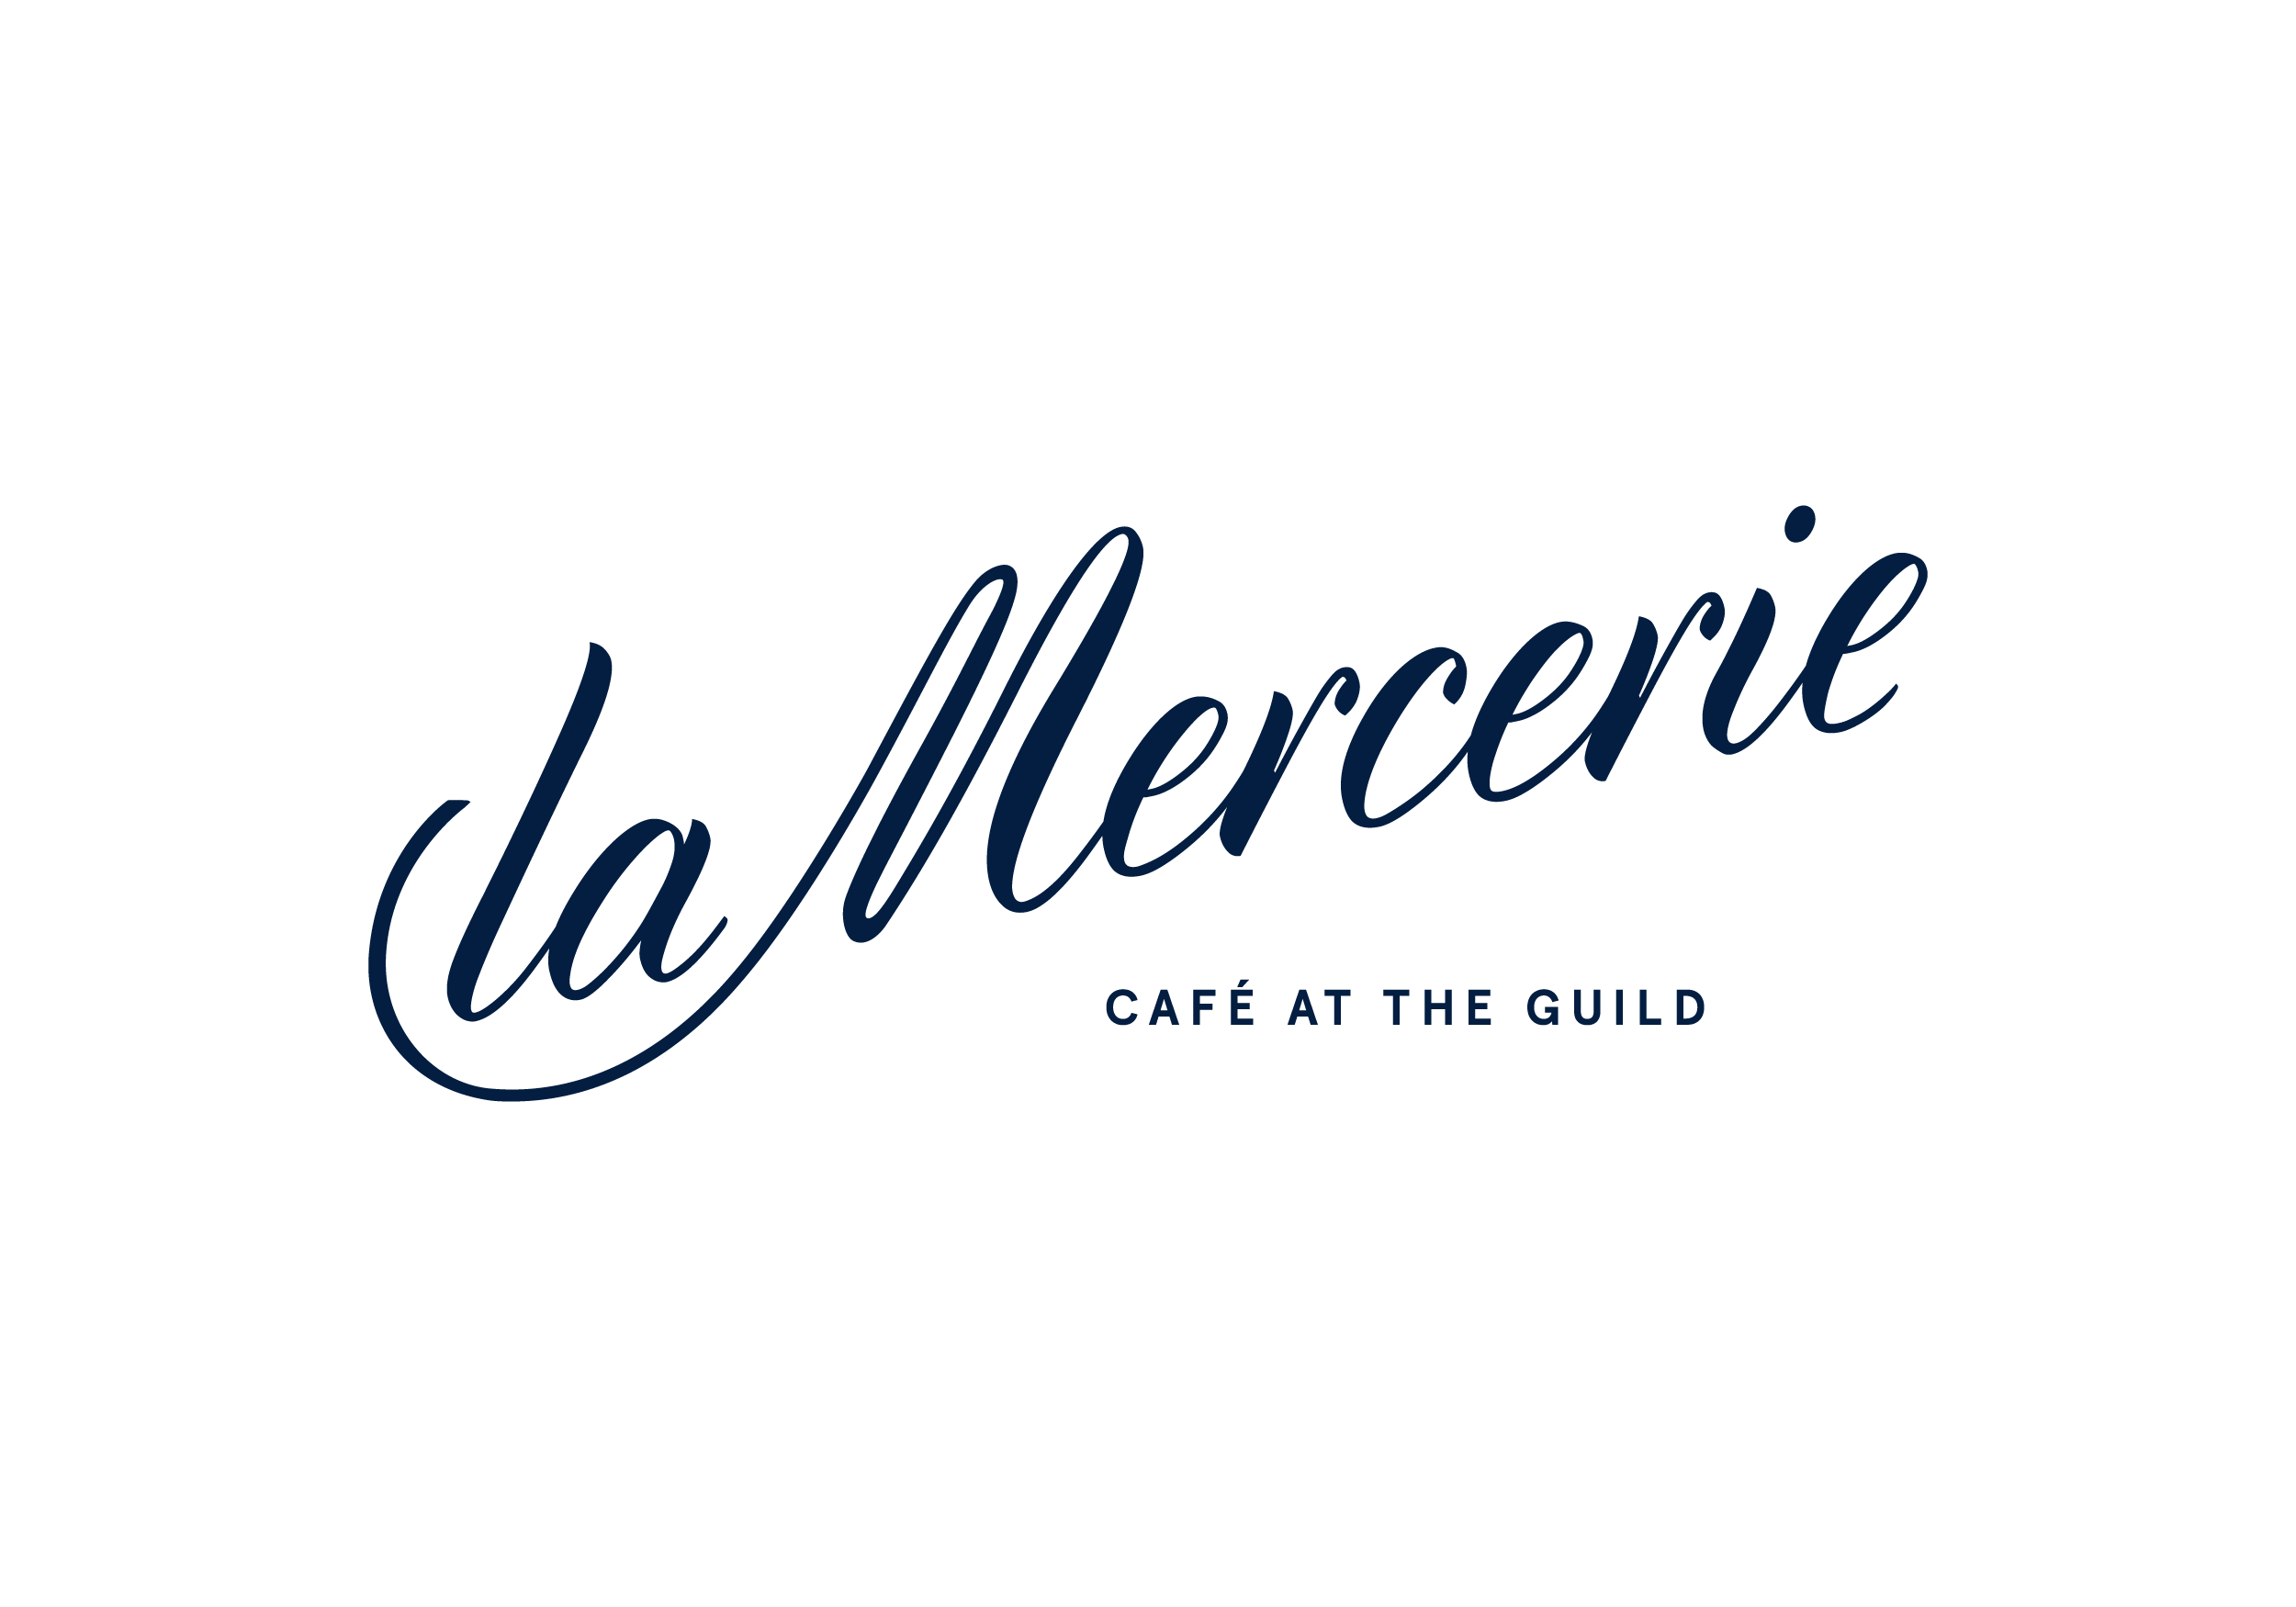 la Mercerie logo in blue